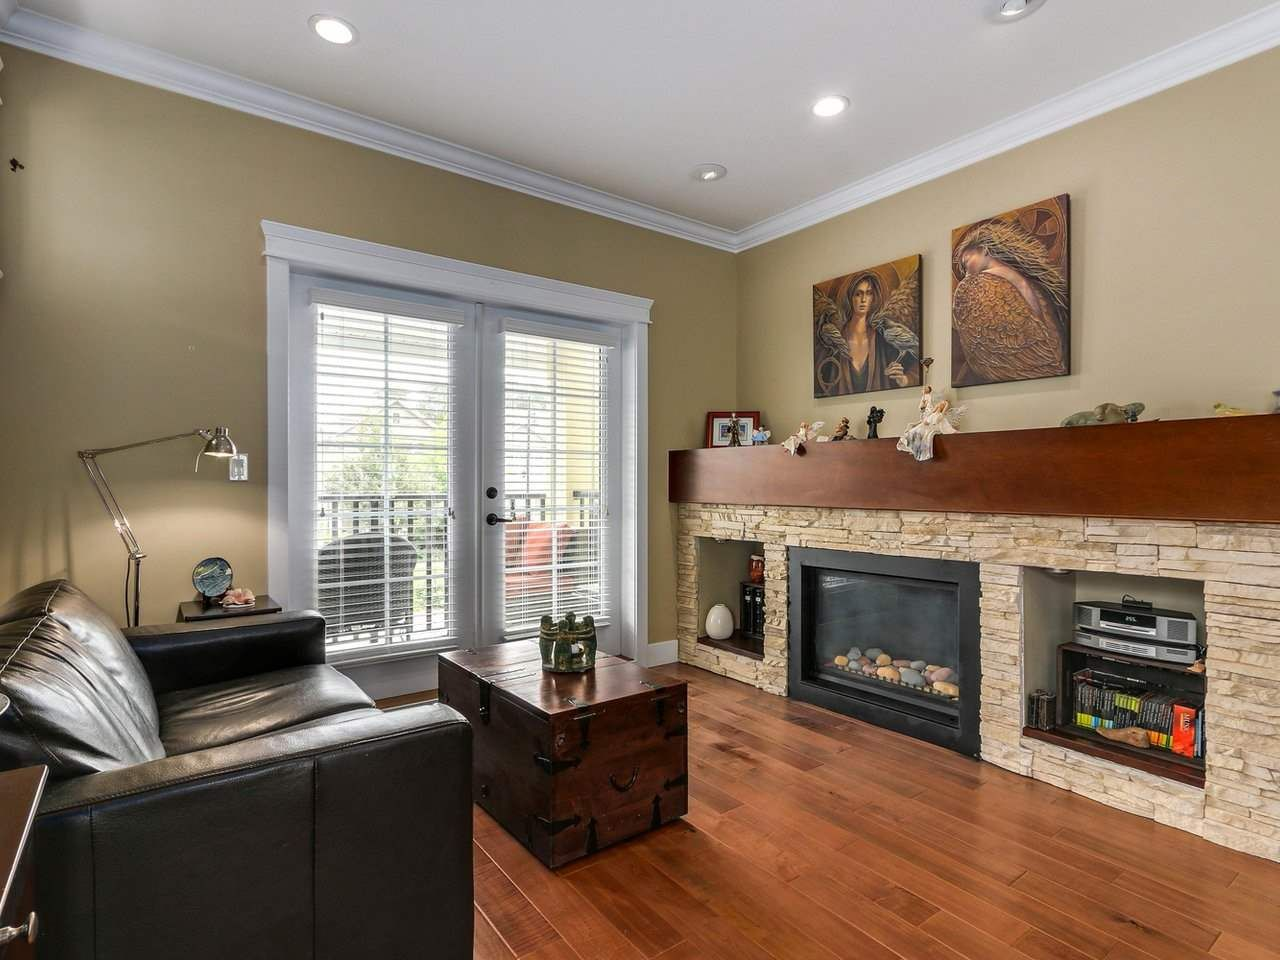 """Photo 3: Photos: 31 17171 2B Avenue in Surrey: Pacific Douglas Townhouse for sale in """"AUGUSTA TOWNHOUSES"""" (South Surrey White Rock)  : MLS®# R2280398"""